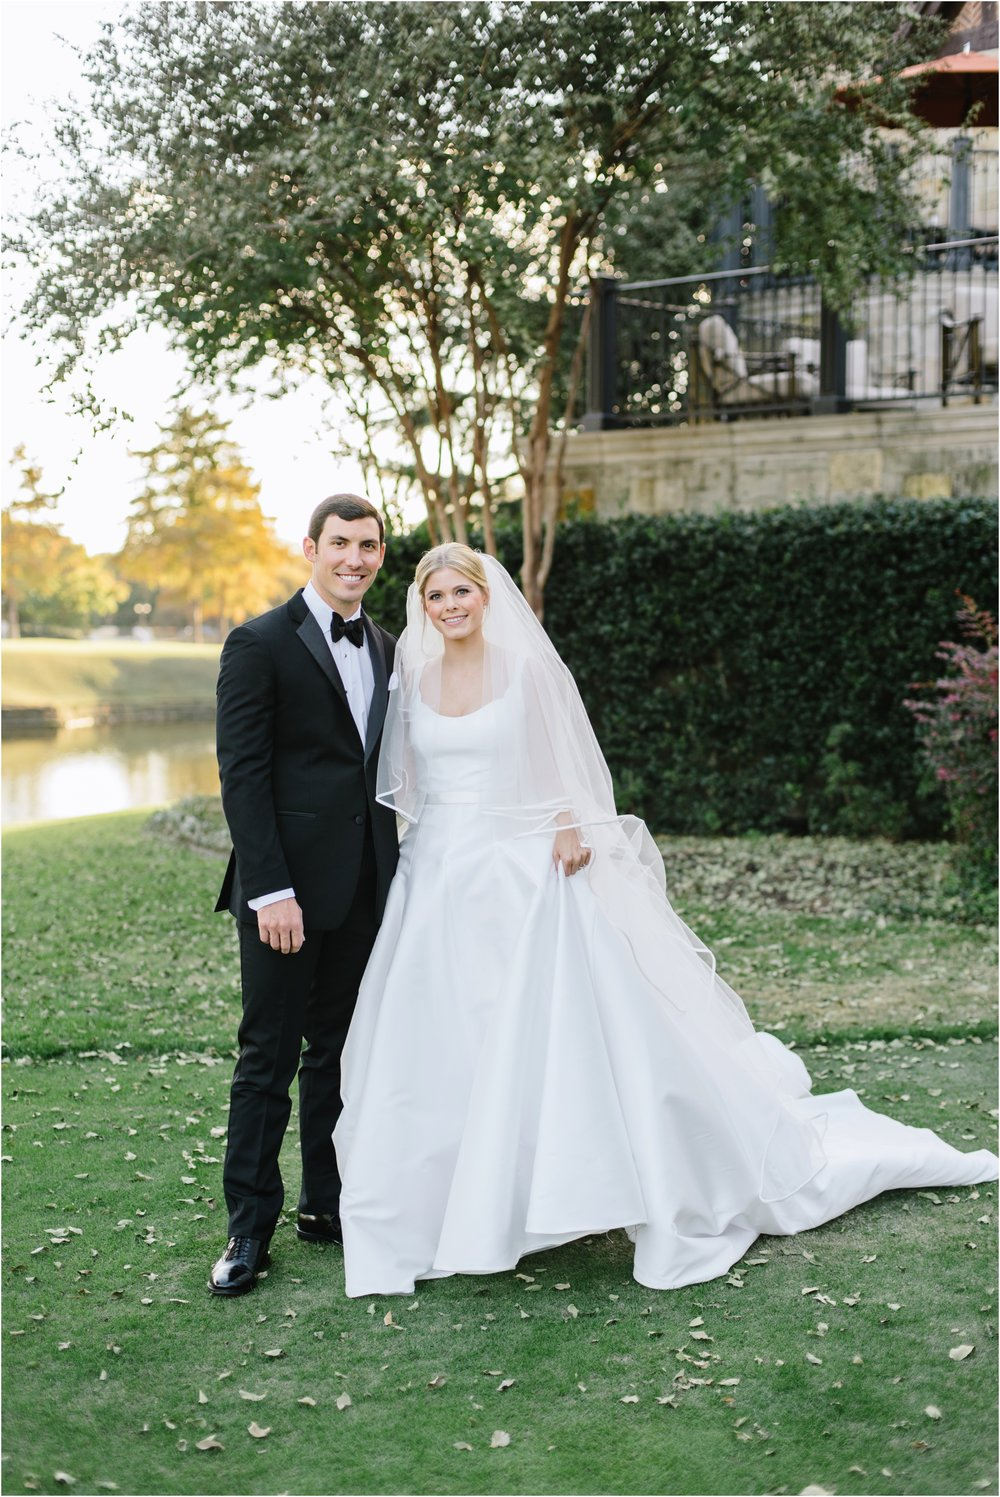 dallasweddingphotographer_DallasCountryClub_Hannah+Matthew_0021.jpg